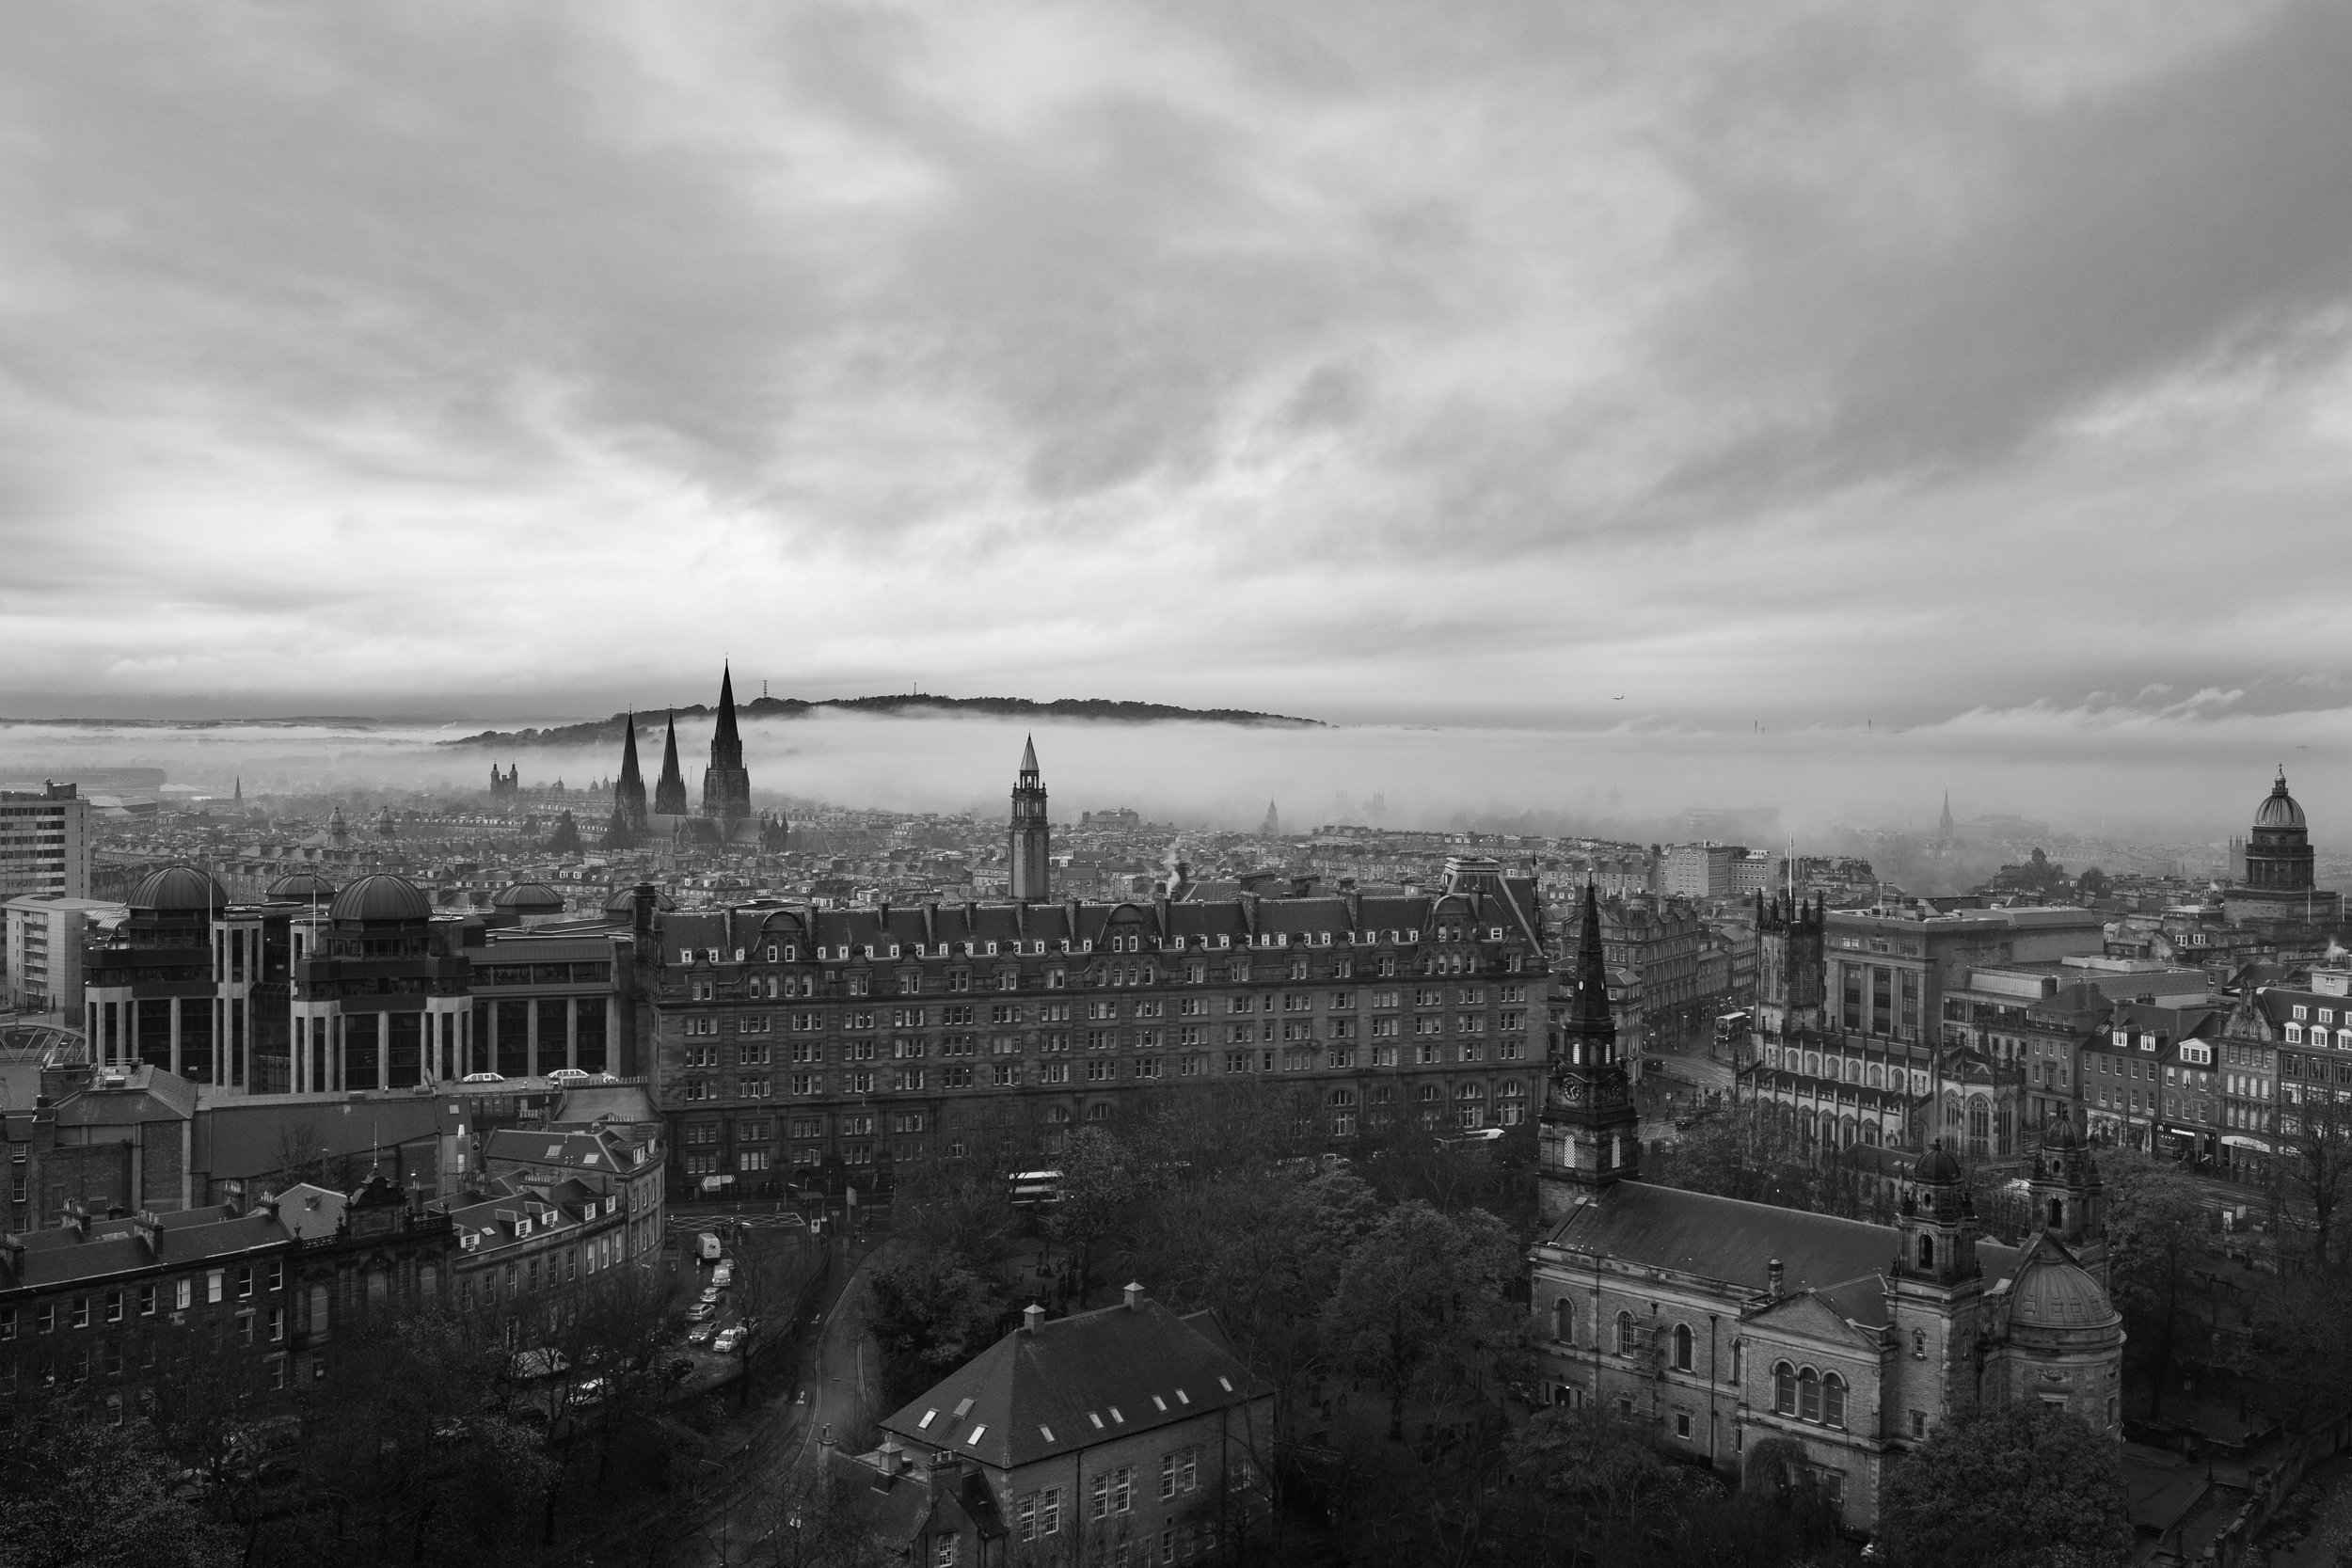 View from Edinburgh Caste, Scotland